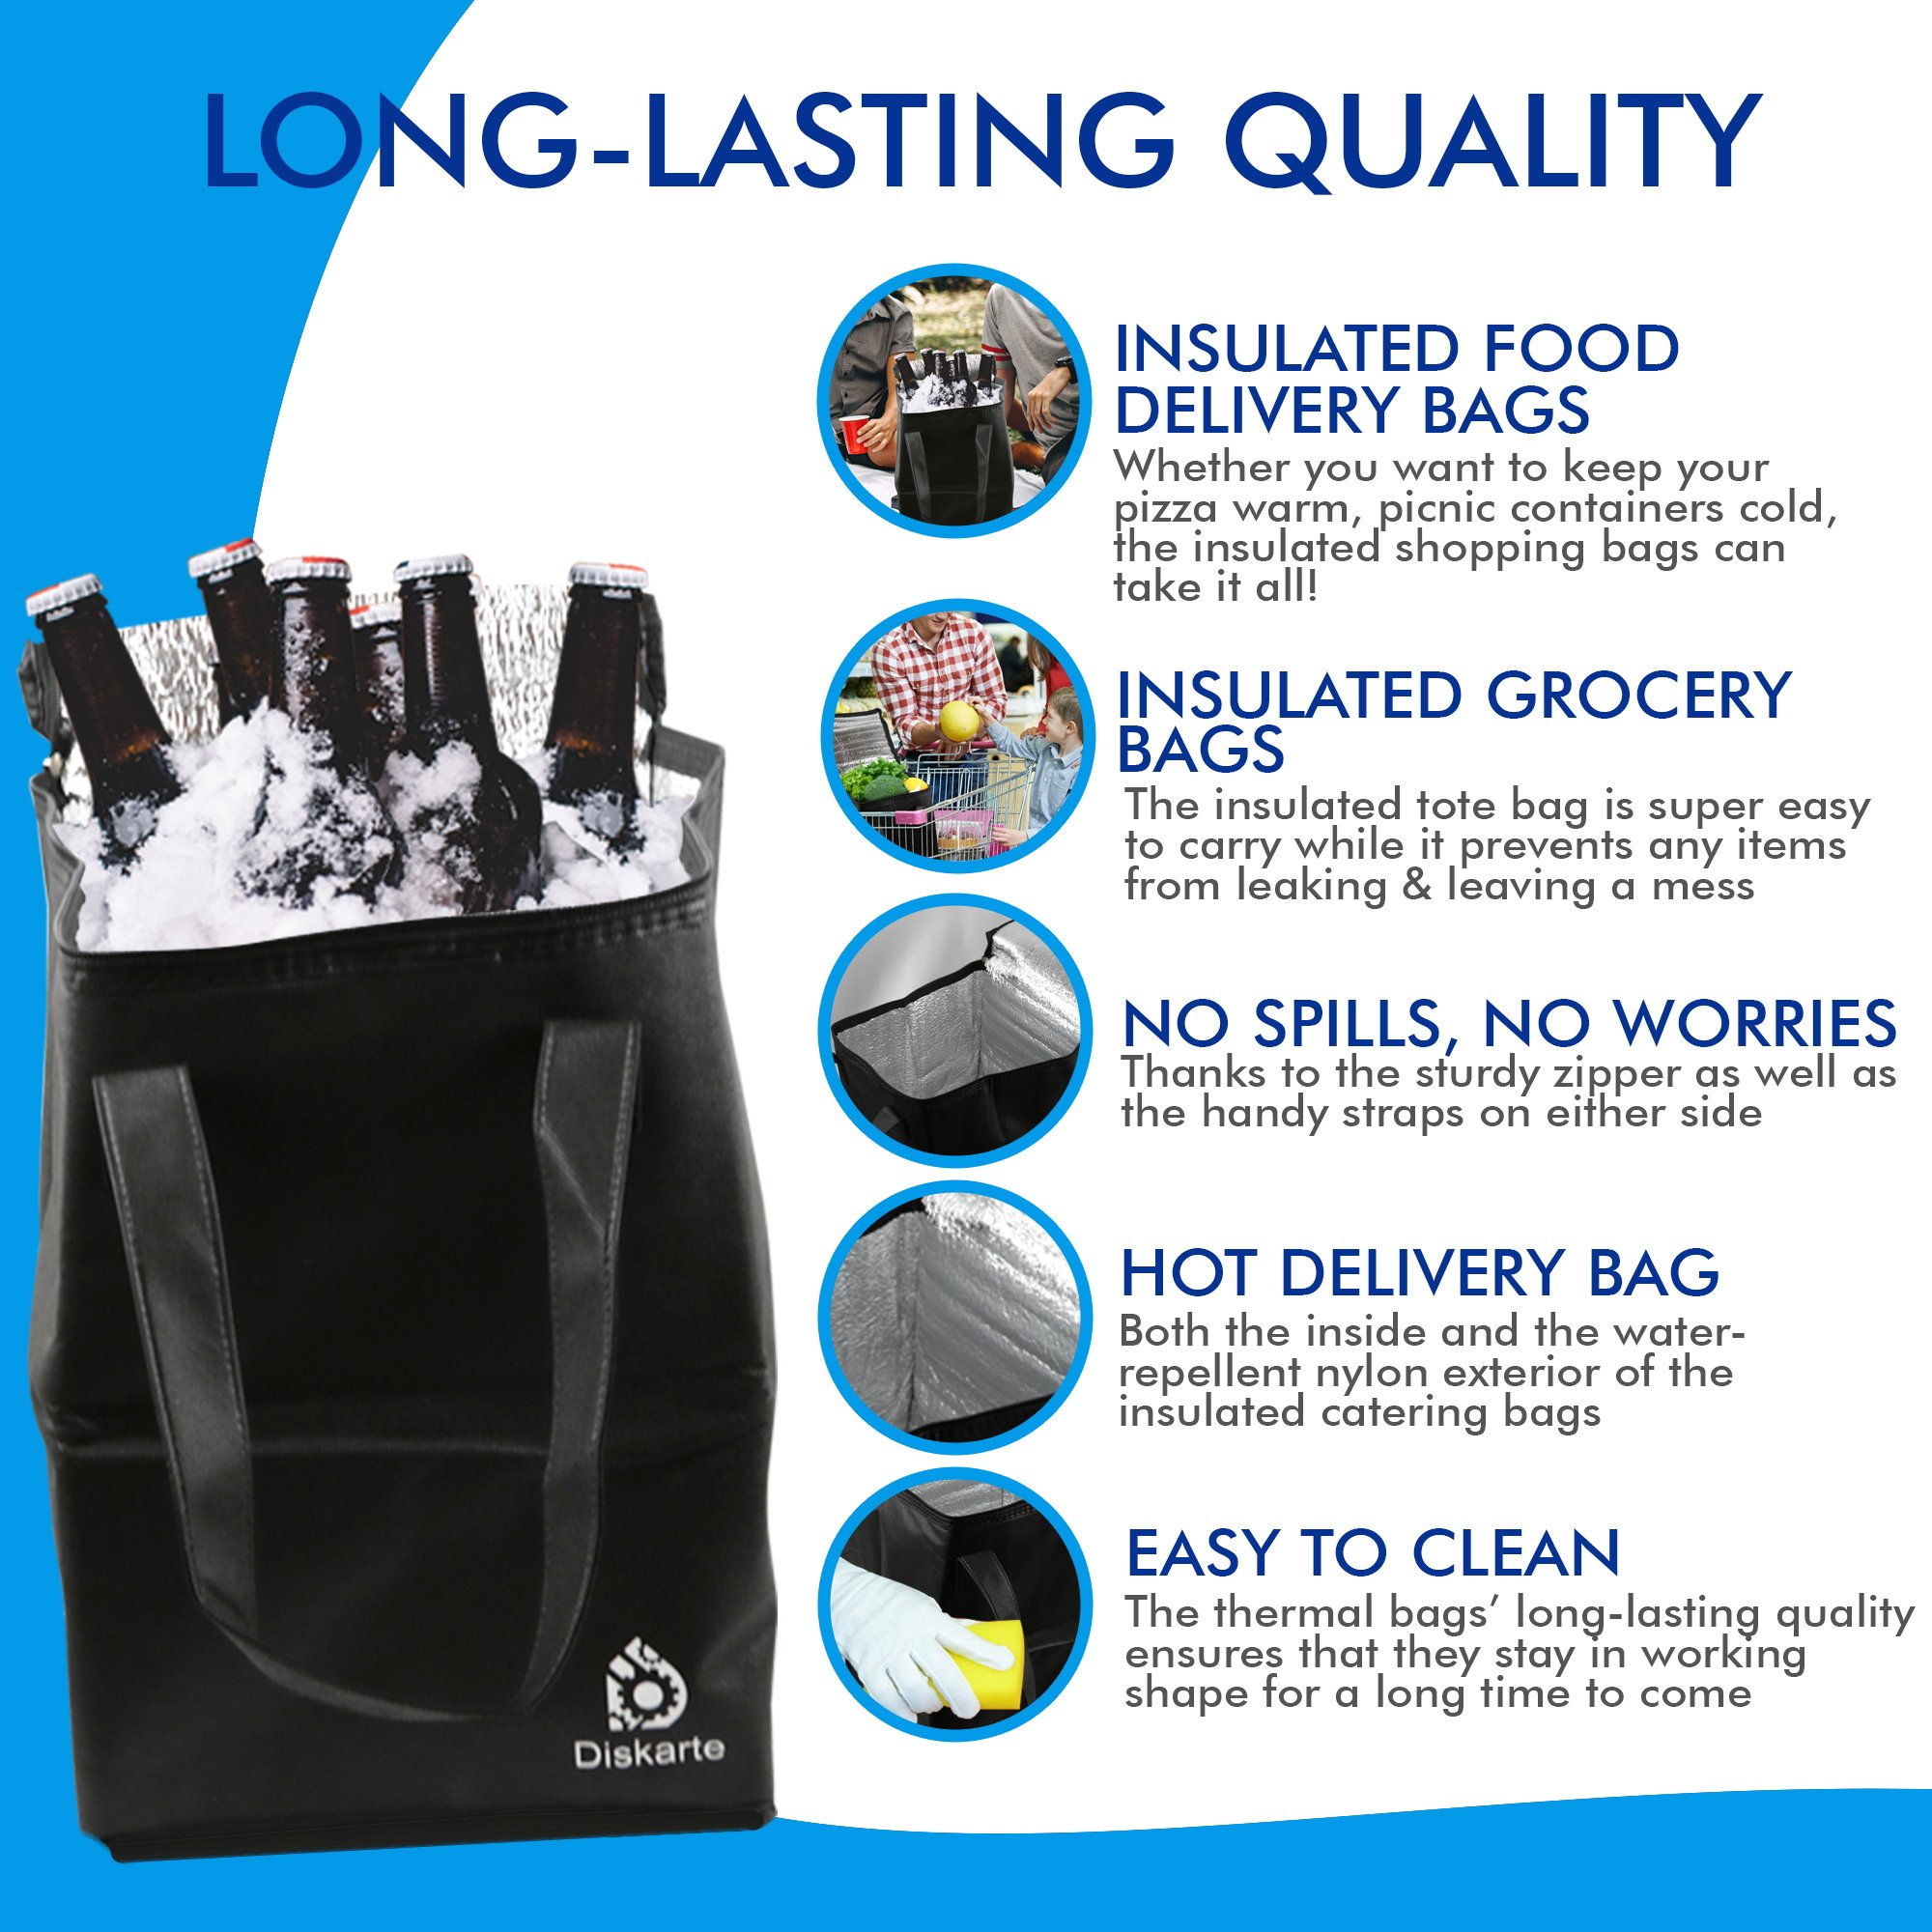 Commercial Quality Food Delivery Bag- 2 Piece Set Black Delivery Bag for Food- 13'' x 9'' x 9'' Dimensions- 80 GSM Nonwoven Polypropylene- Practical and Comfortable by Diskarte (Image #2)